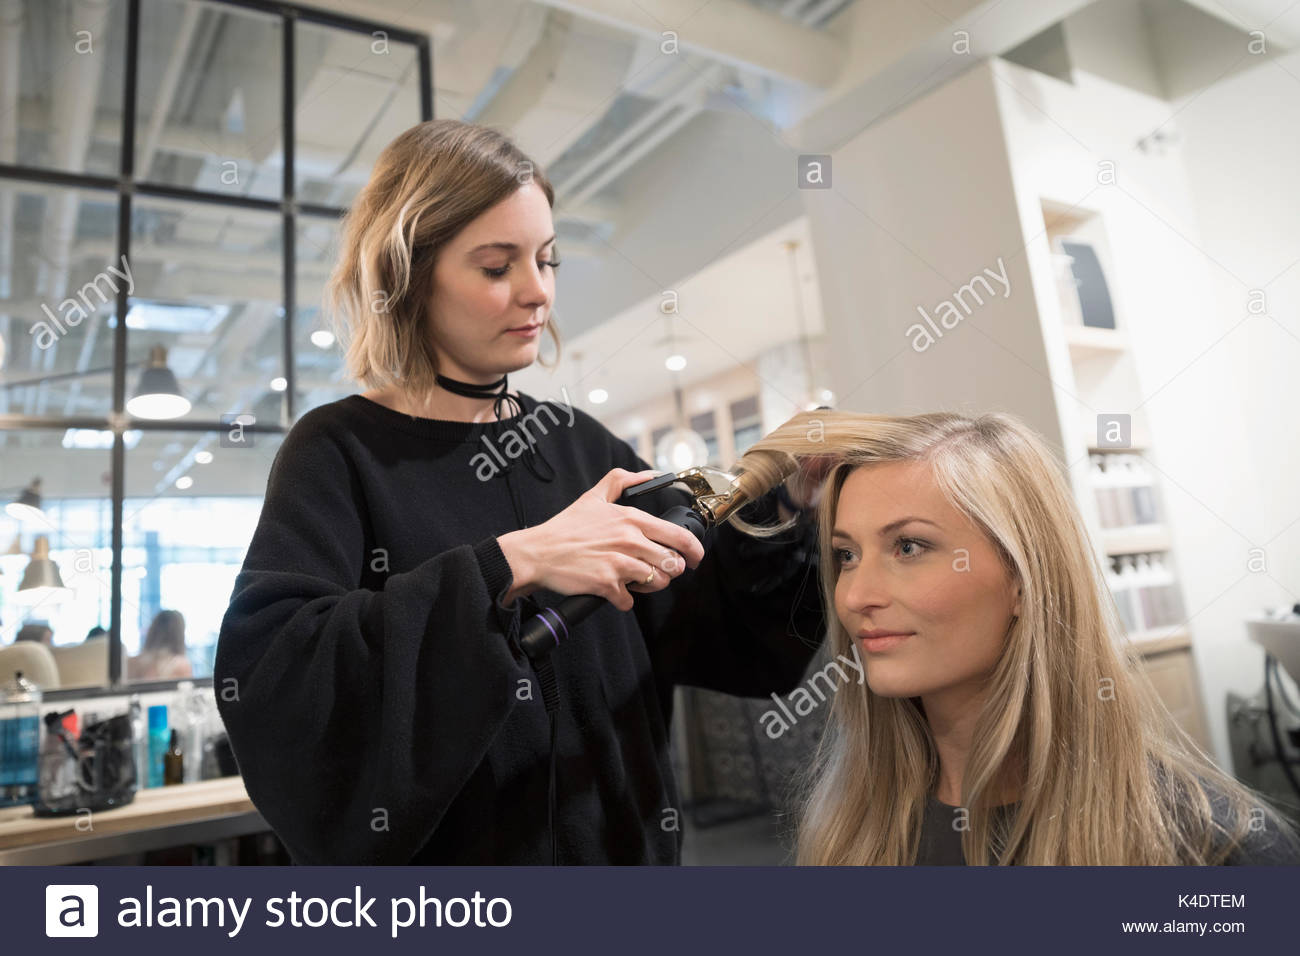 Female hair stylist curling hair of customer with curling iron in hair salon - Stock Image